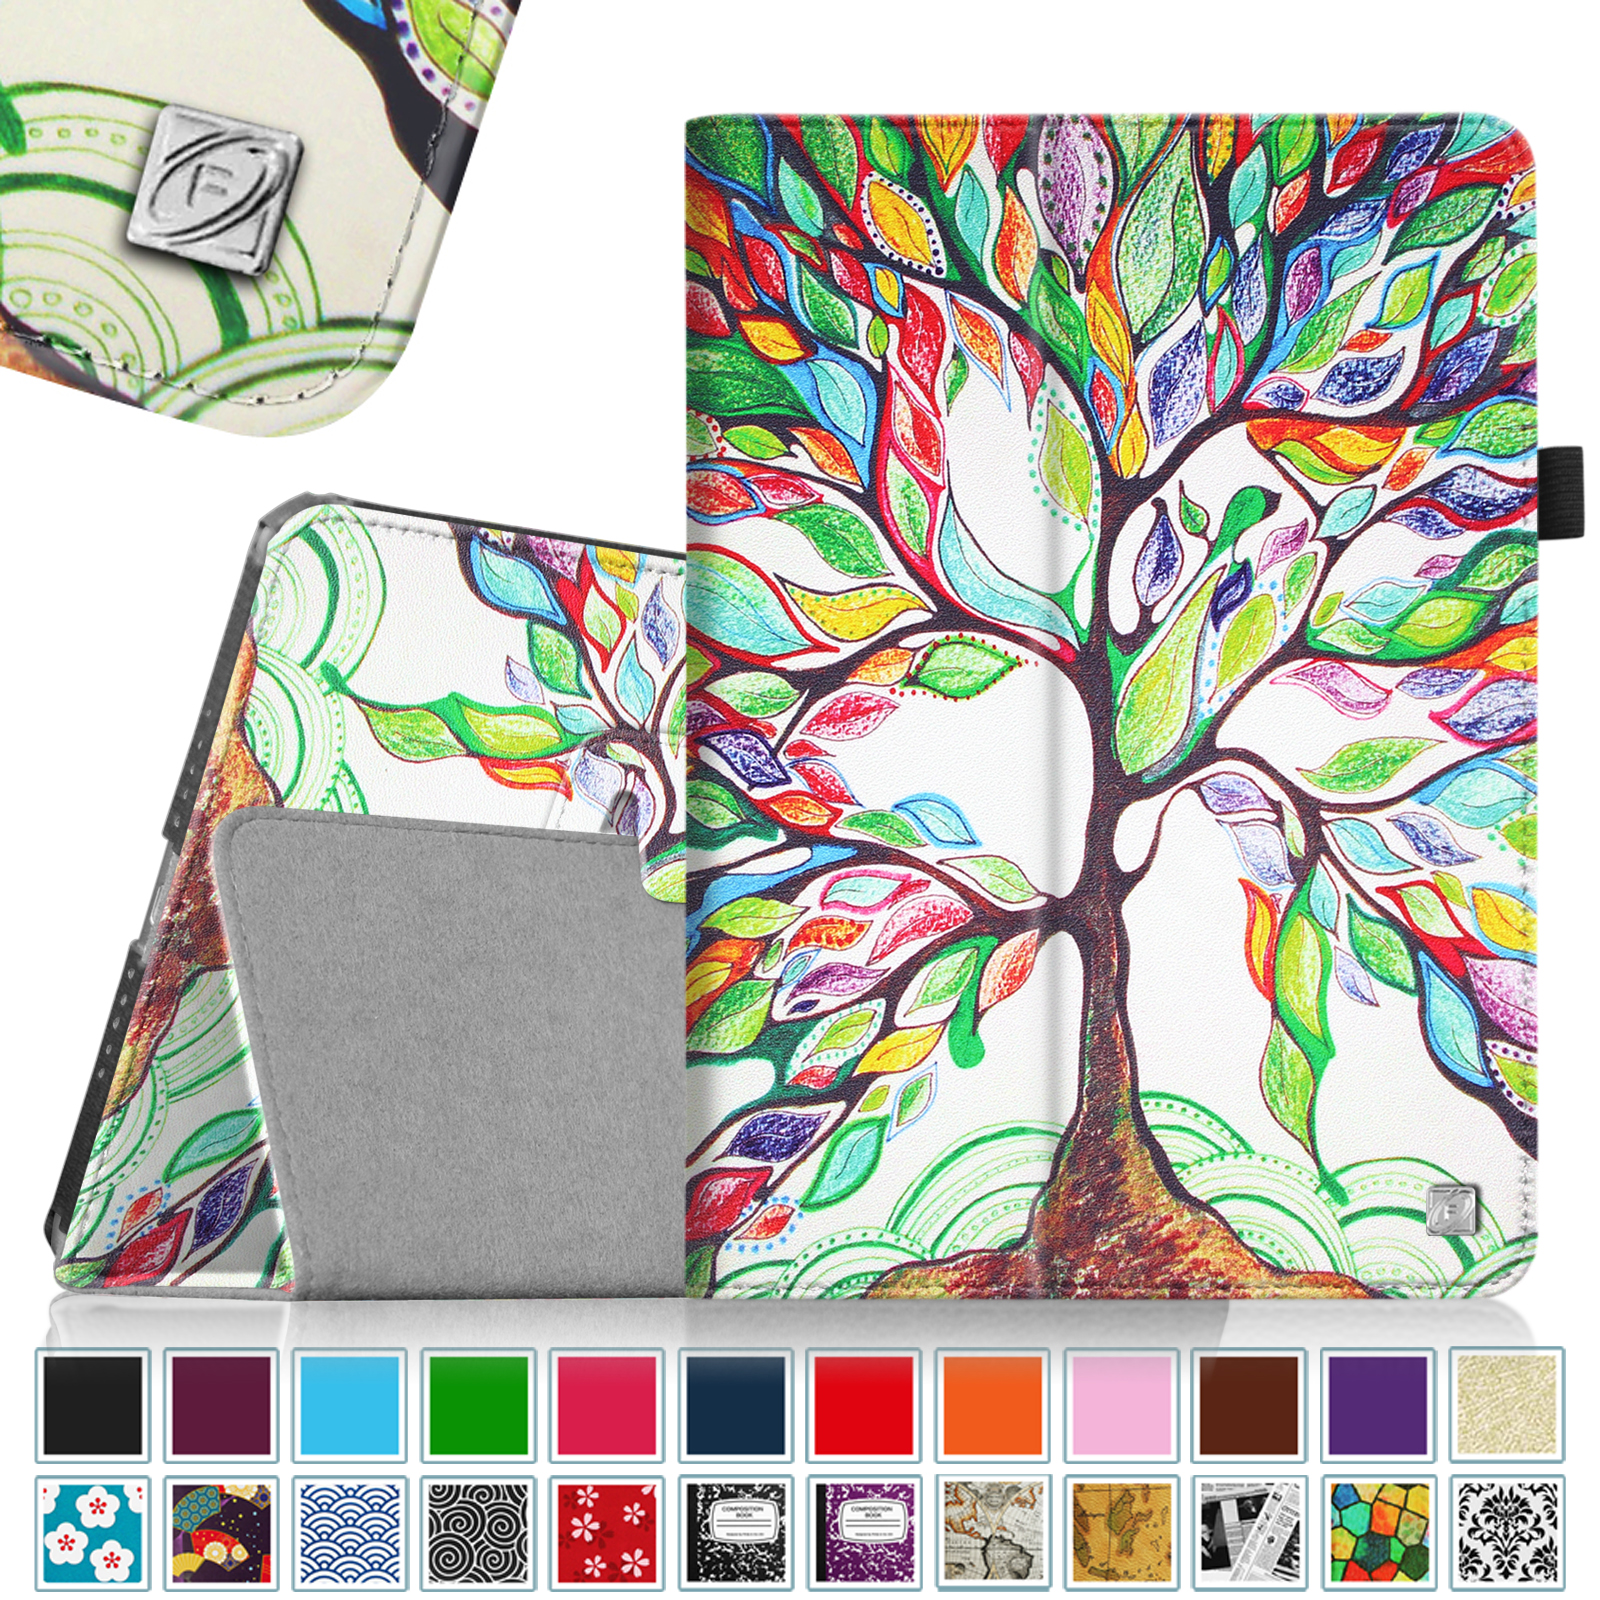 iPad Air 2 Case - Fintie Slim Fit Leather Folio Cover with Auto Sleep / Wake, Love Tree